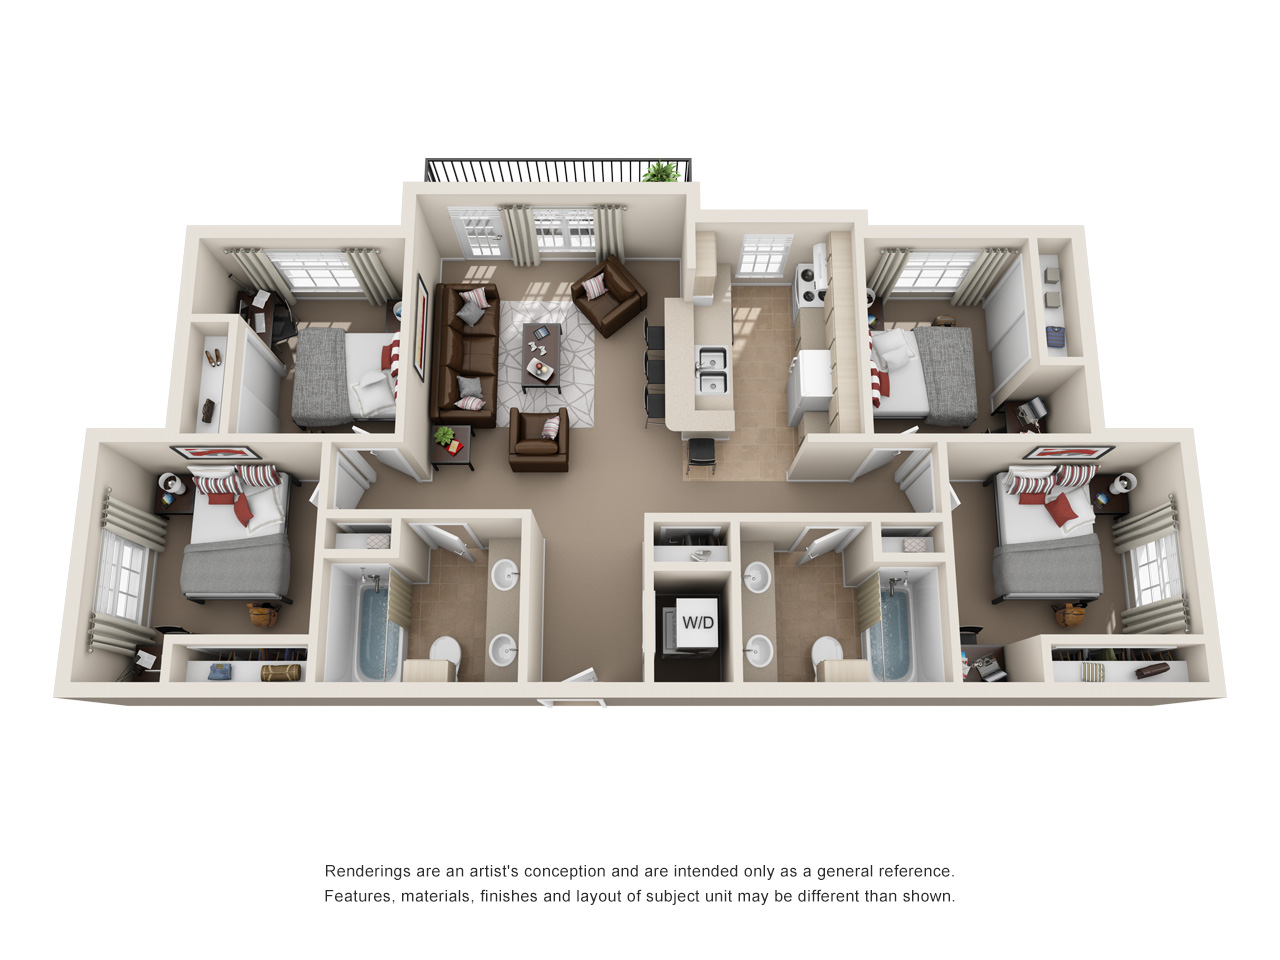 Floor plan of a 4 bed, 2 bath student apartment